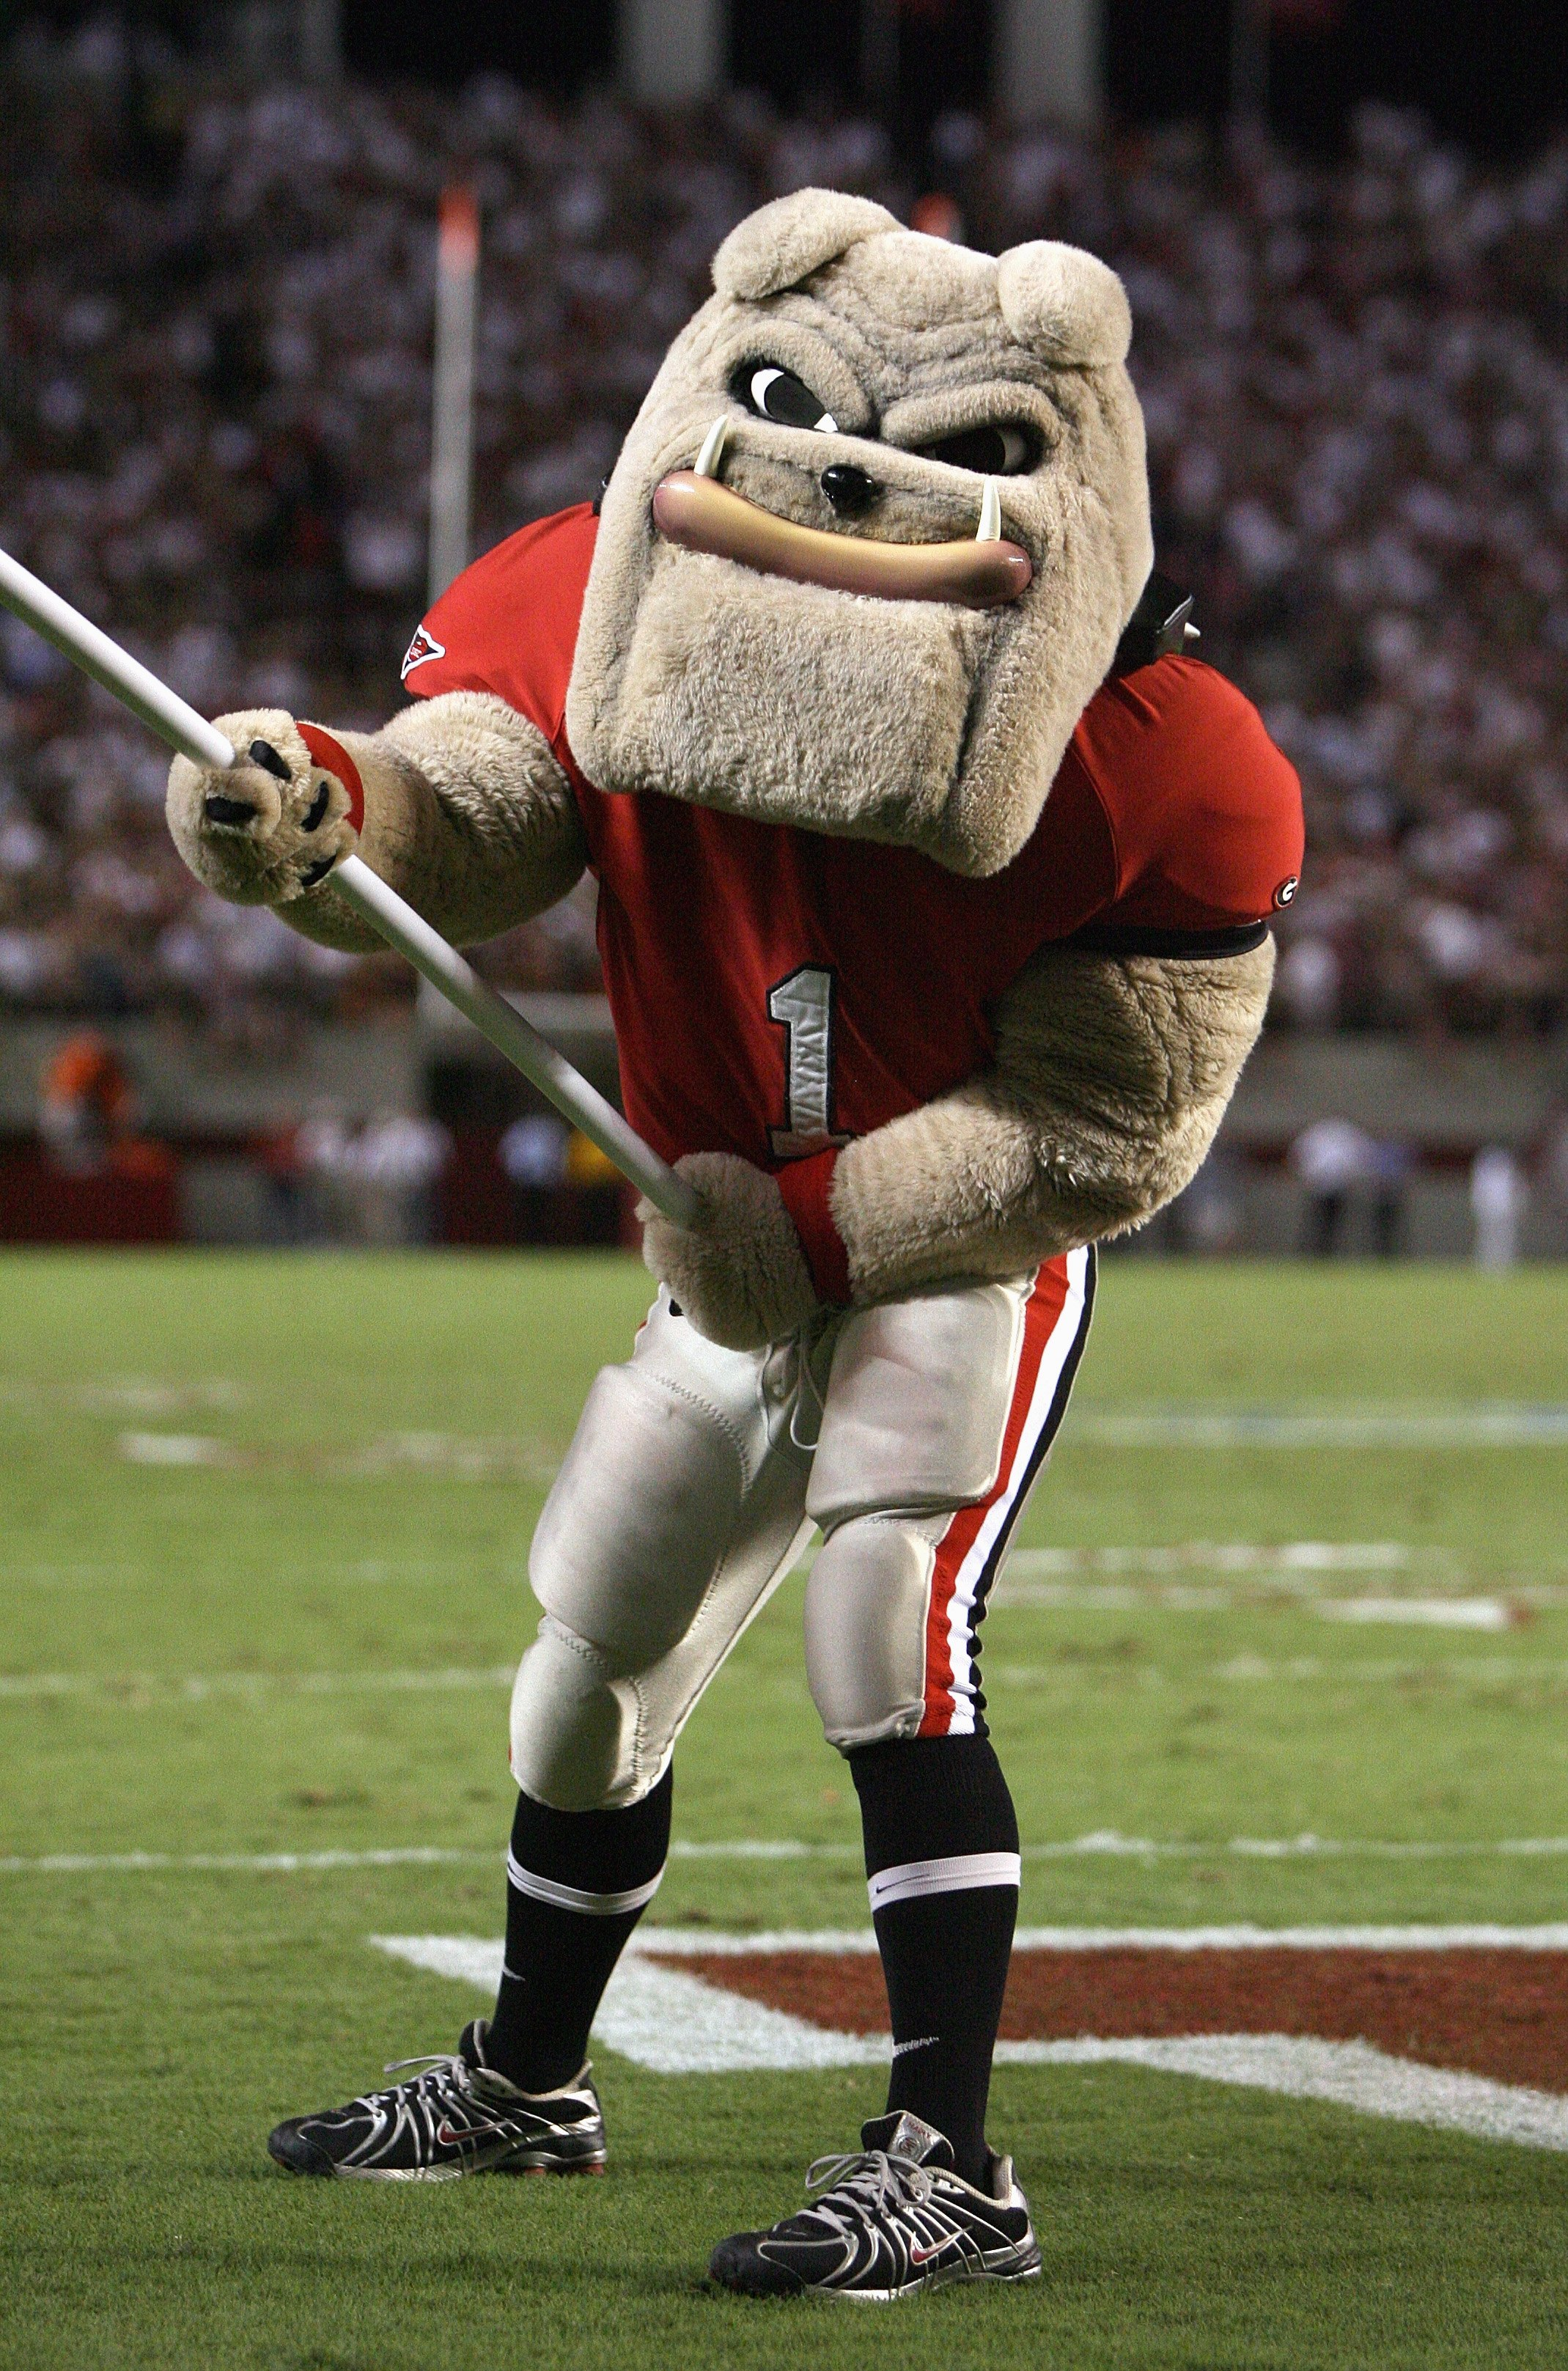 TUSCALOOSA, AL - SEPTEMBER 22: Mascot of the Georgia Bulldogs waves a flag on the field during the game against the Alabama Crimson Tide at Bryant-Denny Stadium September 22, 2007 in Tuscaloosa, Alabama. Georgia defeated Alabama 26-23 in overtime. (Photo